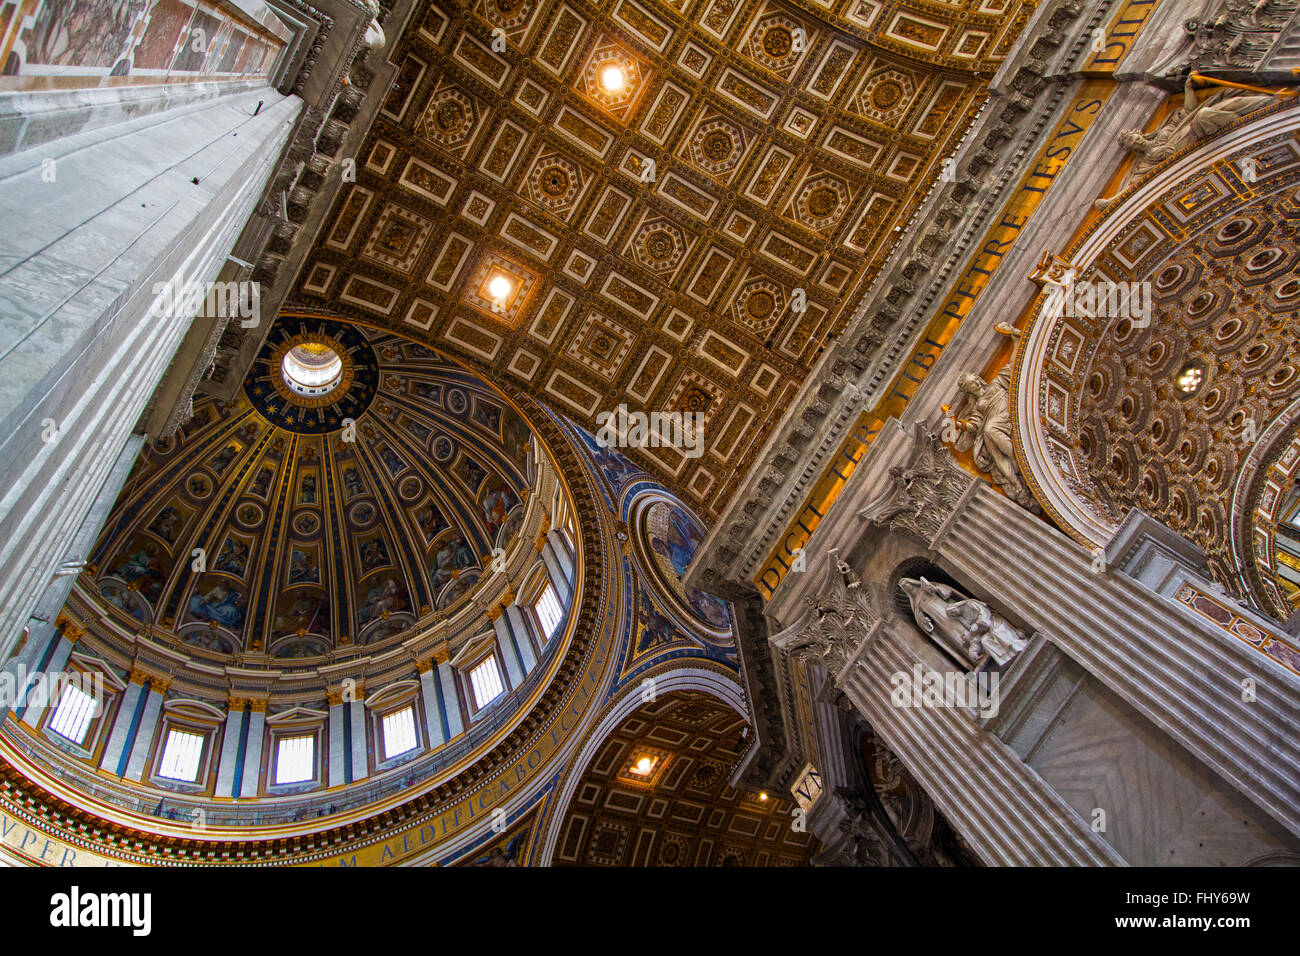 Inside St Peters Basilica Church, Rome, Italy - Stock Image